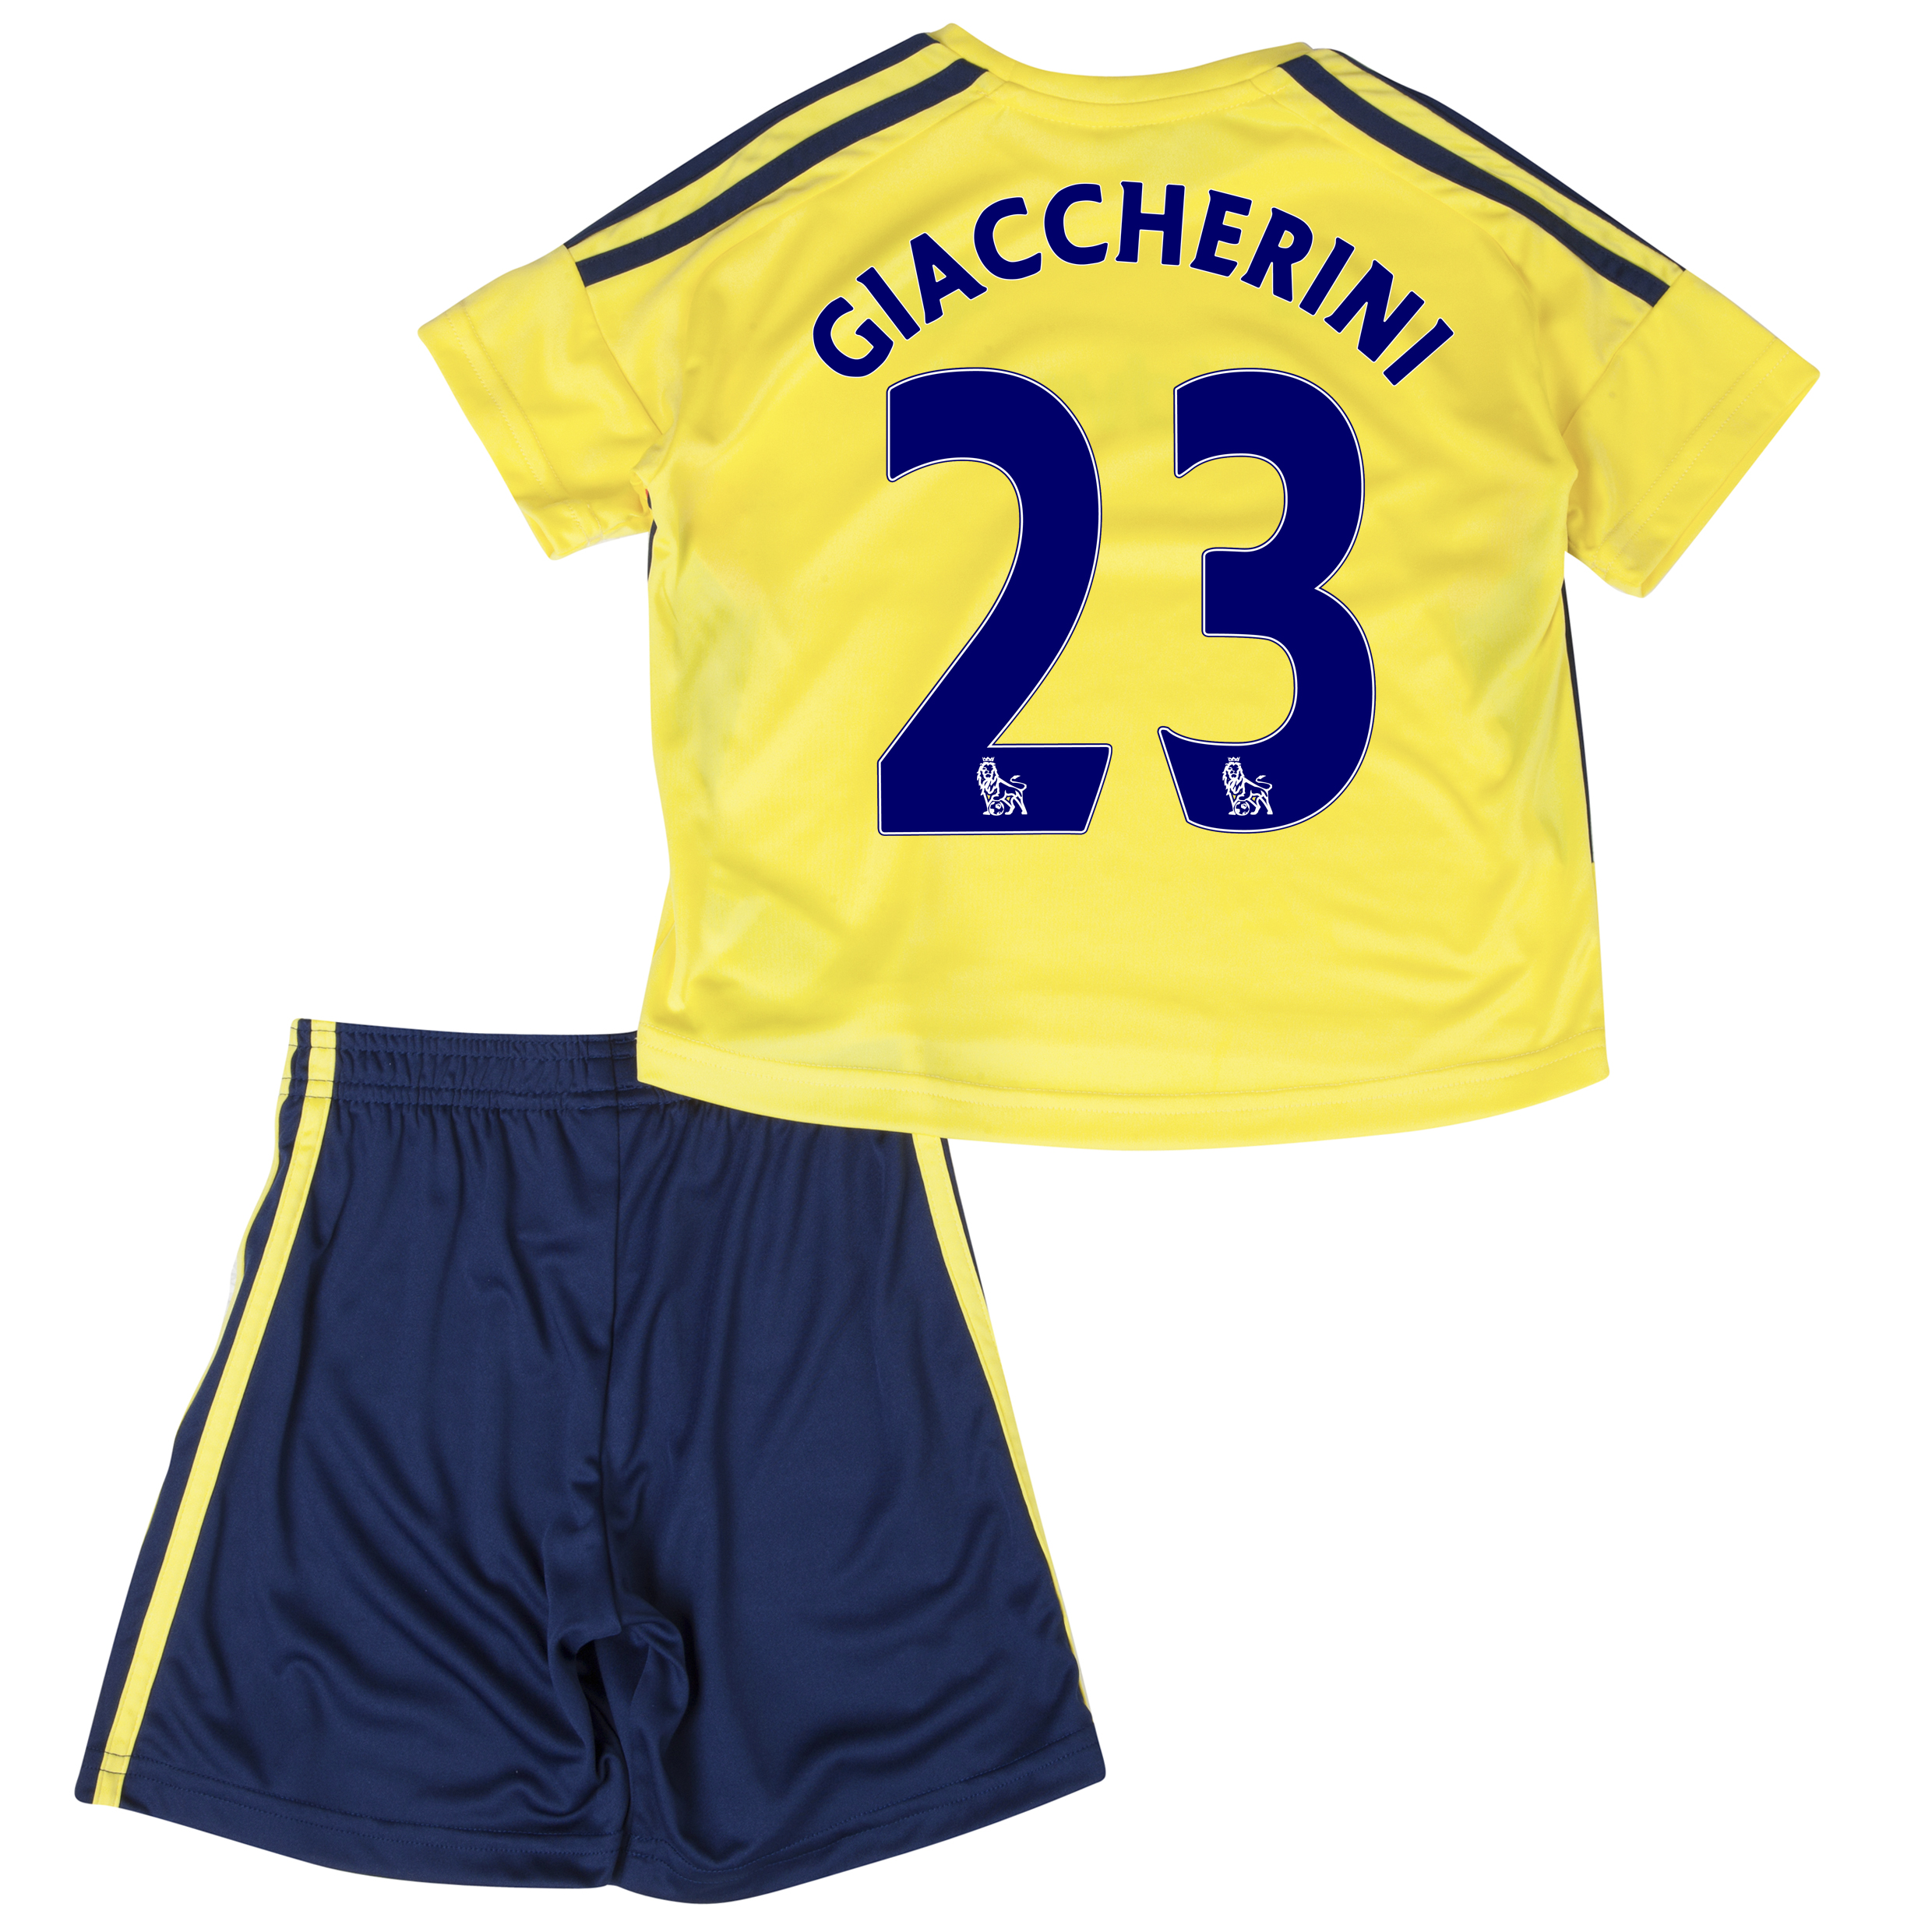 Sunderland Away Minikit 2013/14 - Infants with Giaccherini 23 printing